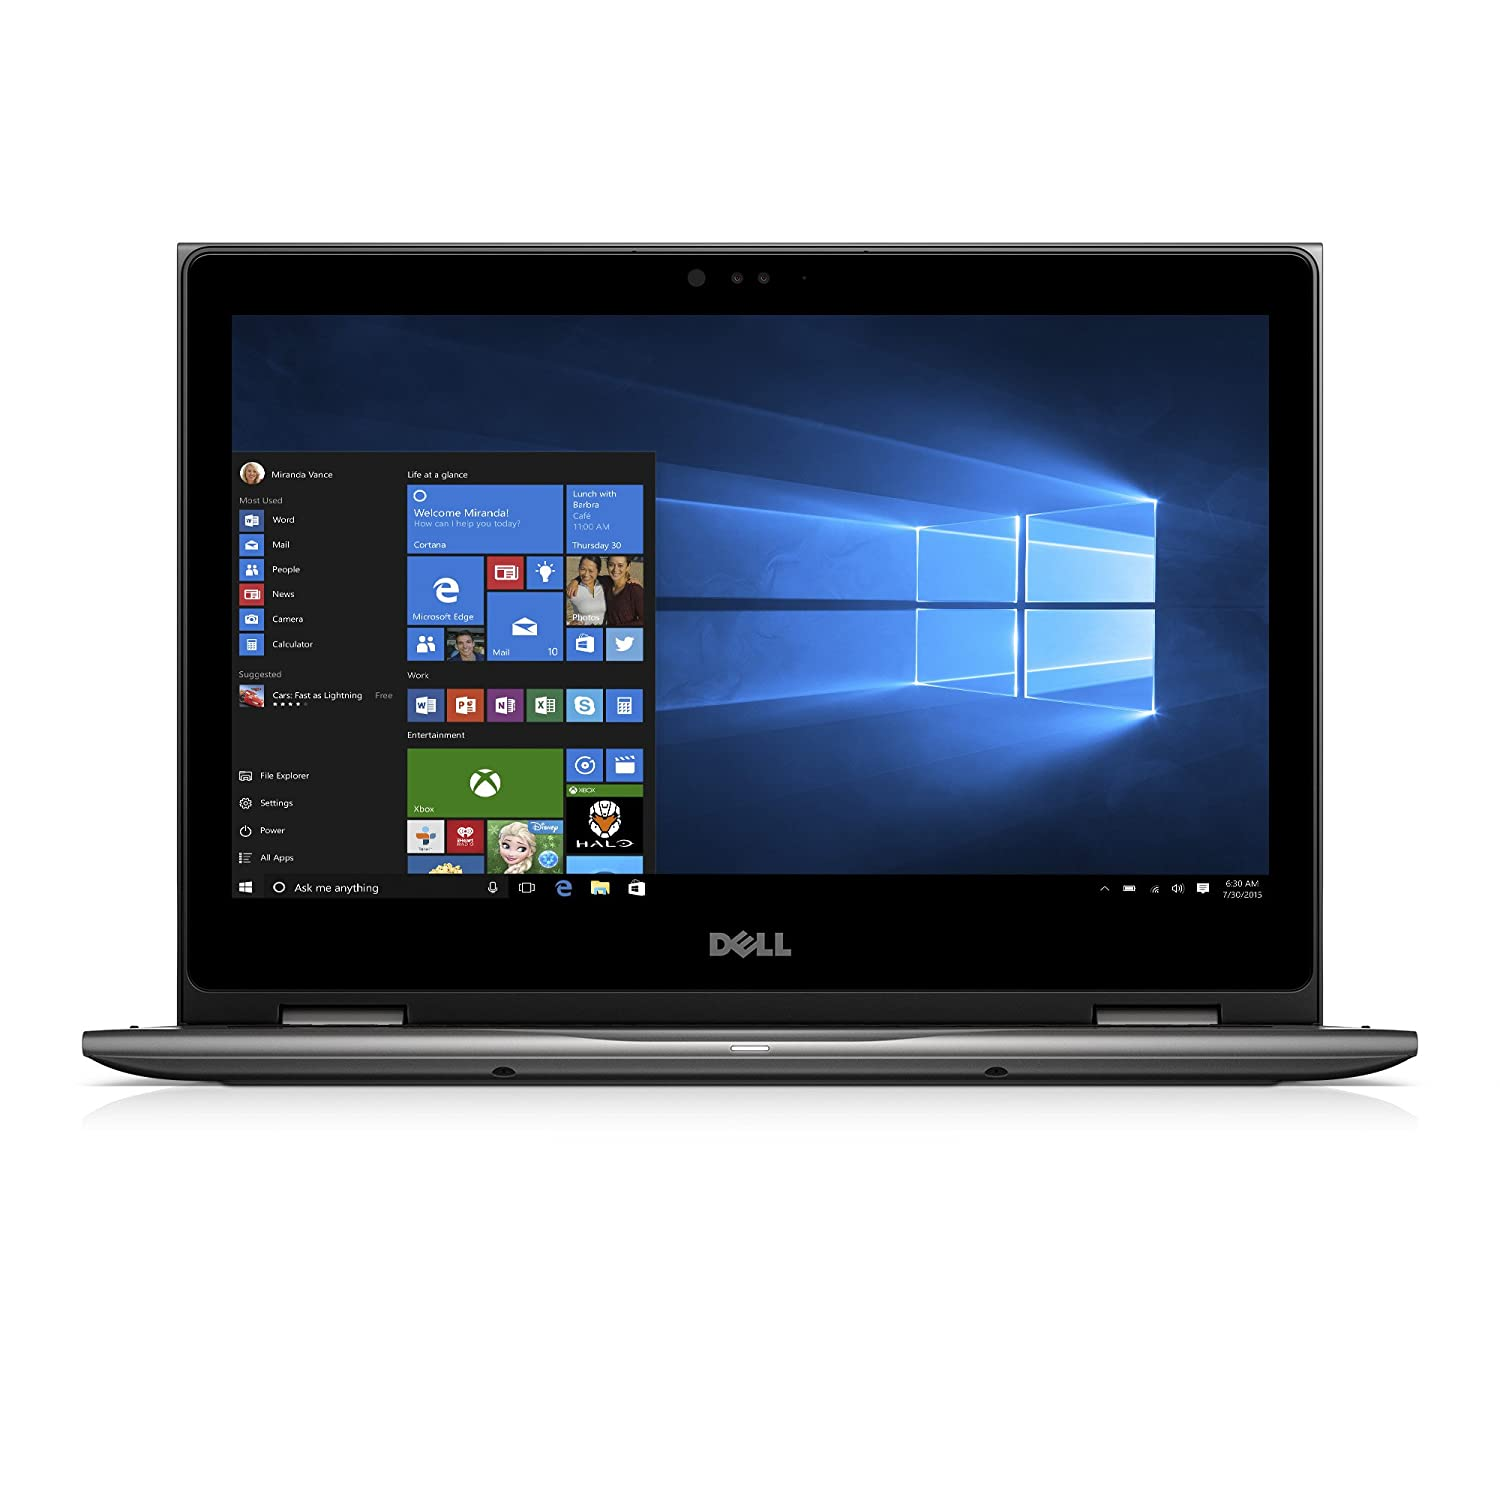 Dell Inspiron I5378 7171 Gry 13.3 Fhd 2 In 1 (7th Generation Intel Core I7, 8 Gb, 256 Gb Ssd) Microsoft Signature Image by Dell